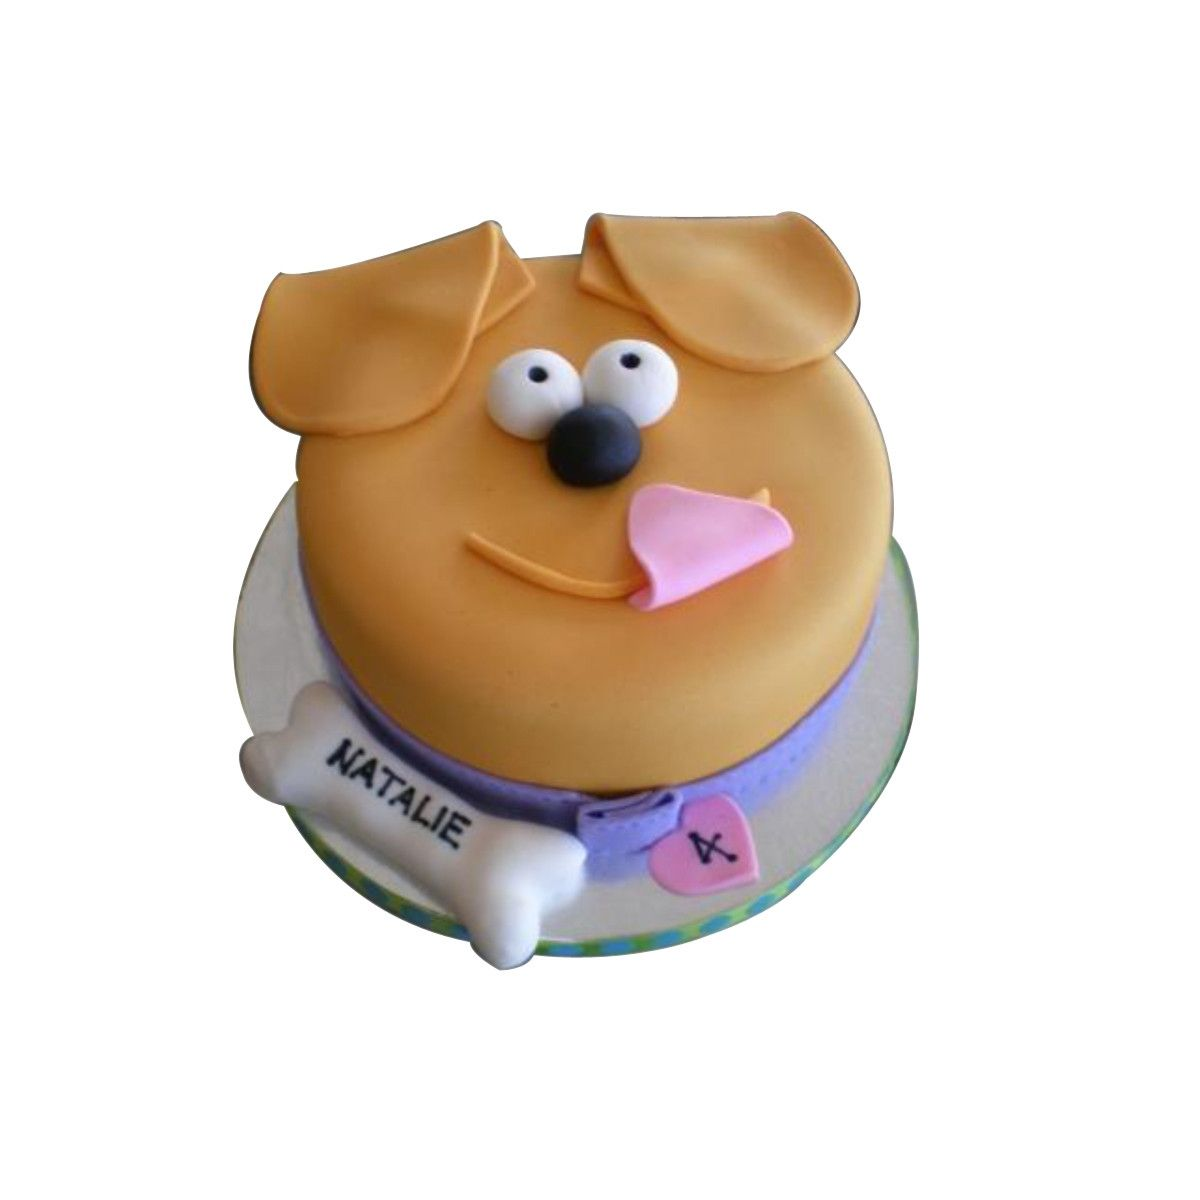 Free UK Delivery On All Cakes With Each Cake Handmade To Order Book Your Dog